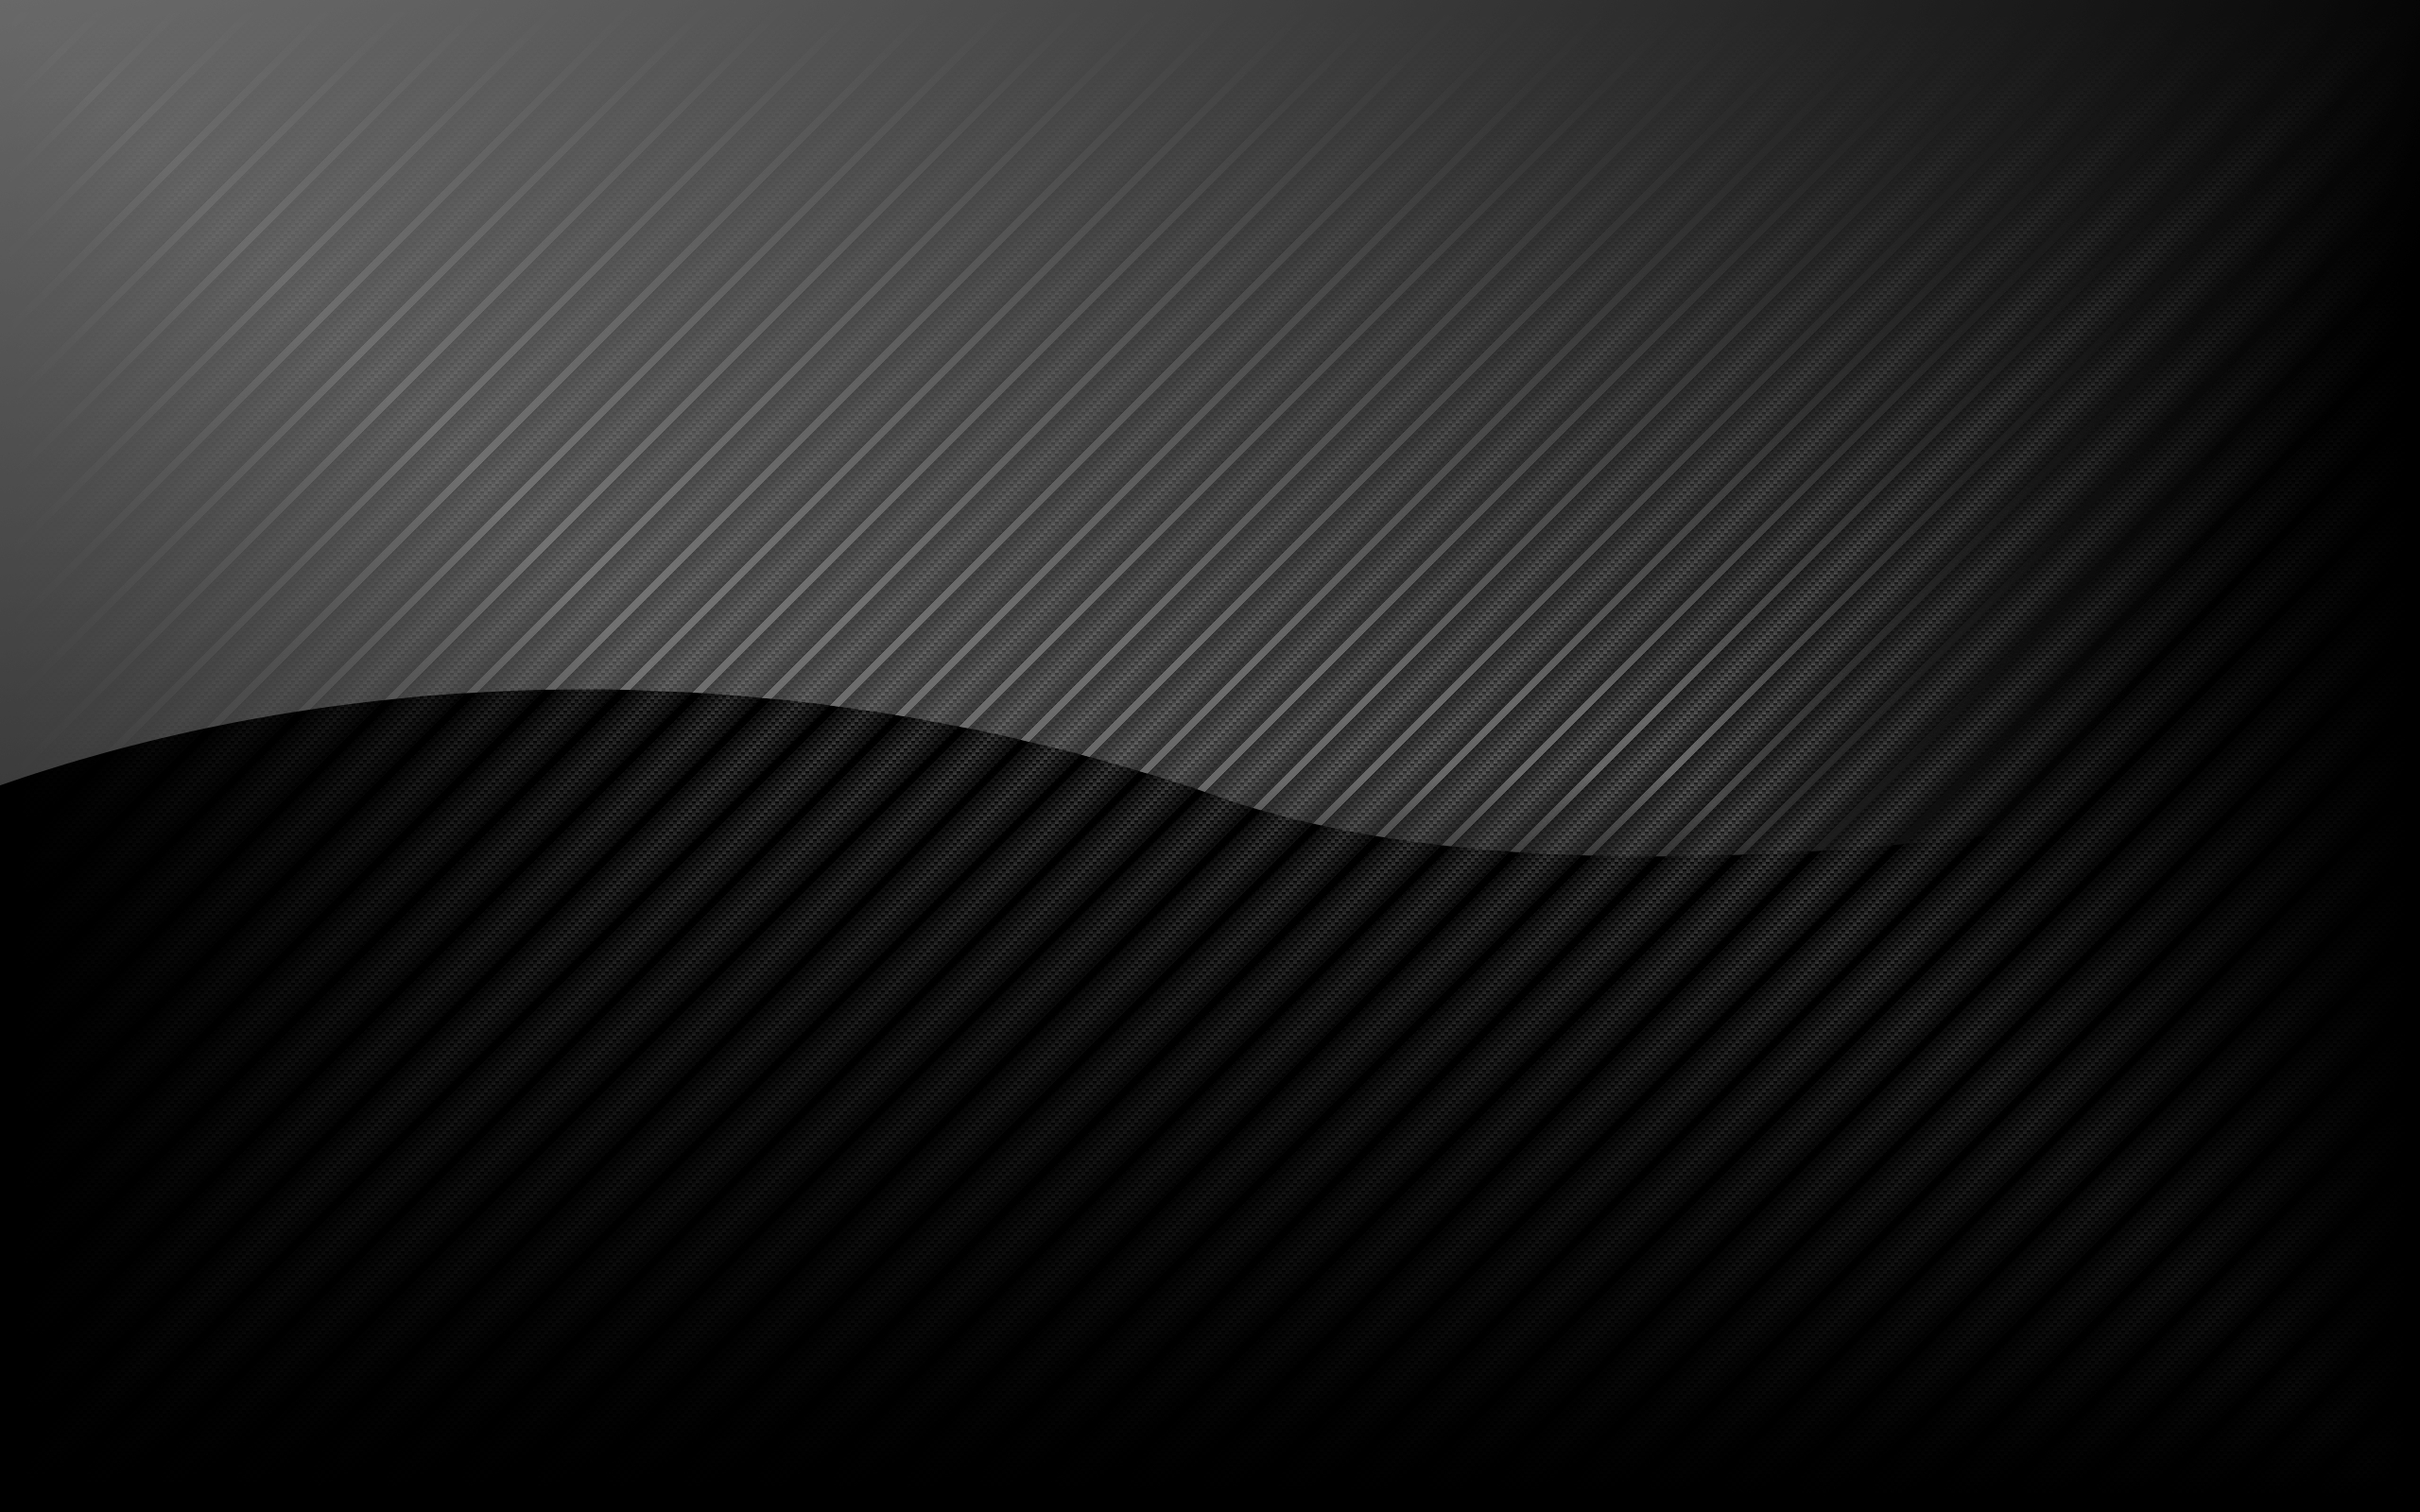 carbon fiber wallpaper widescreen retina imac - carbon fiber